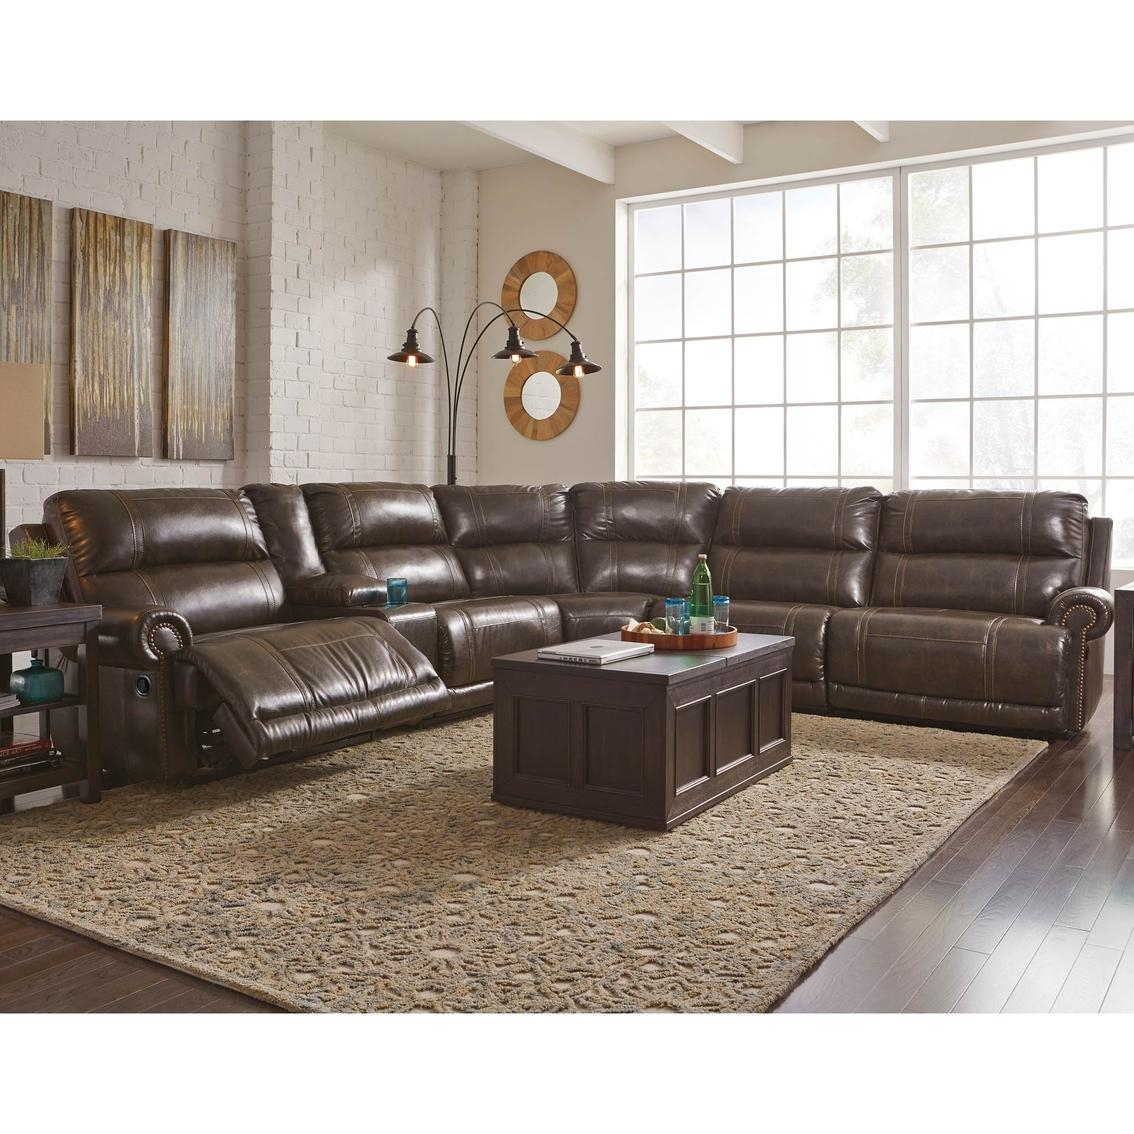 Sectional Bed Sofa Ashley Furniture Sectional Vista